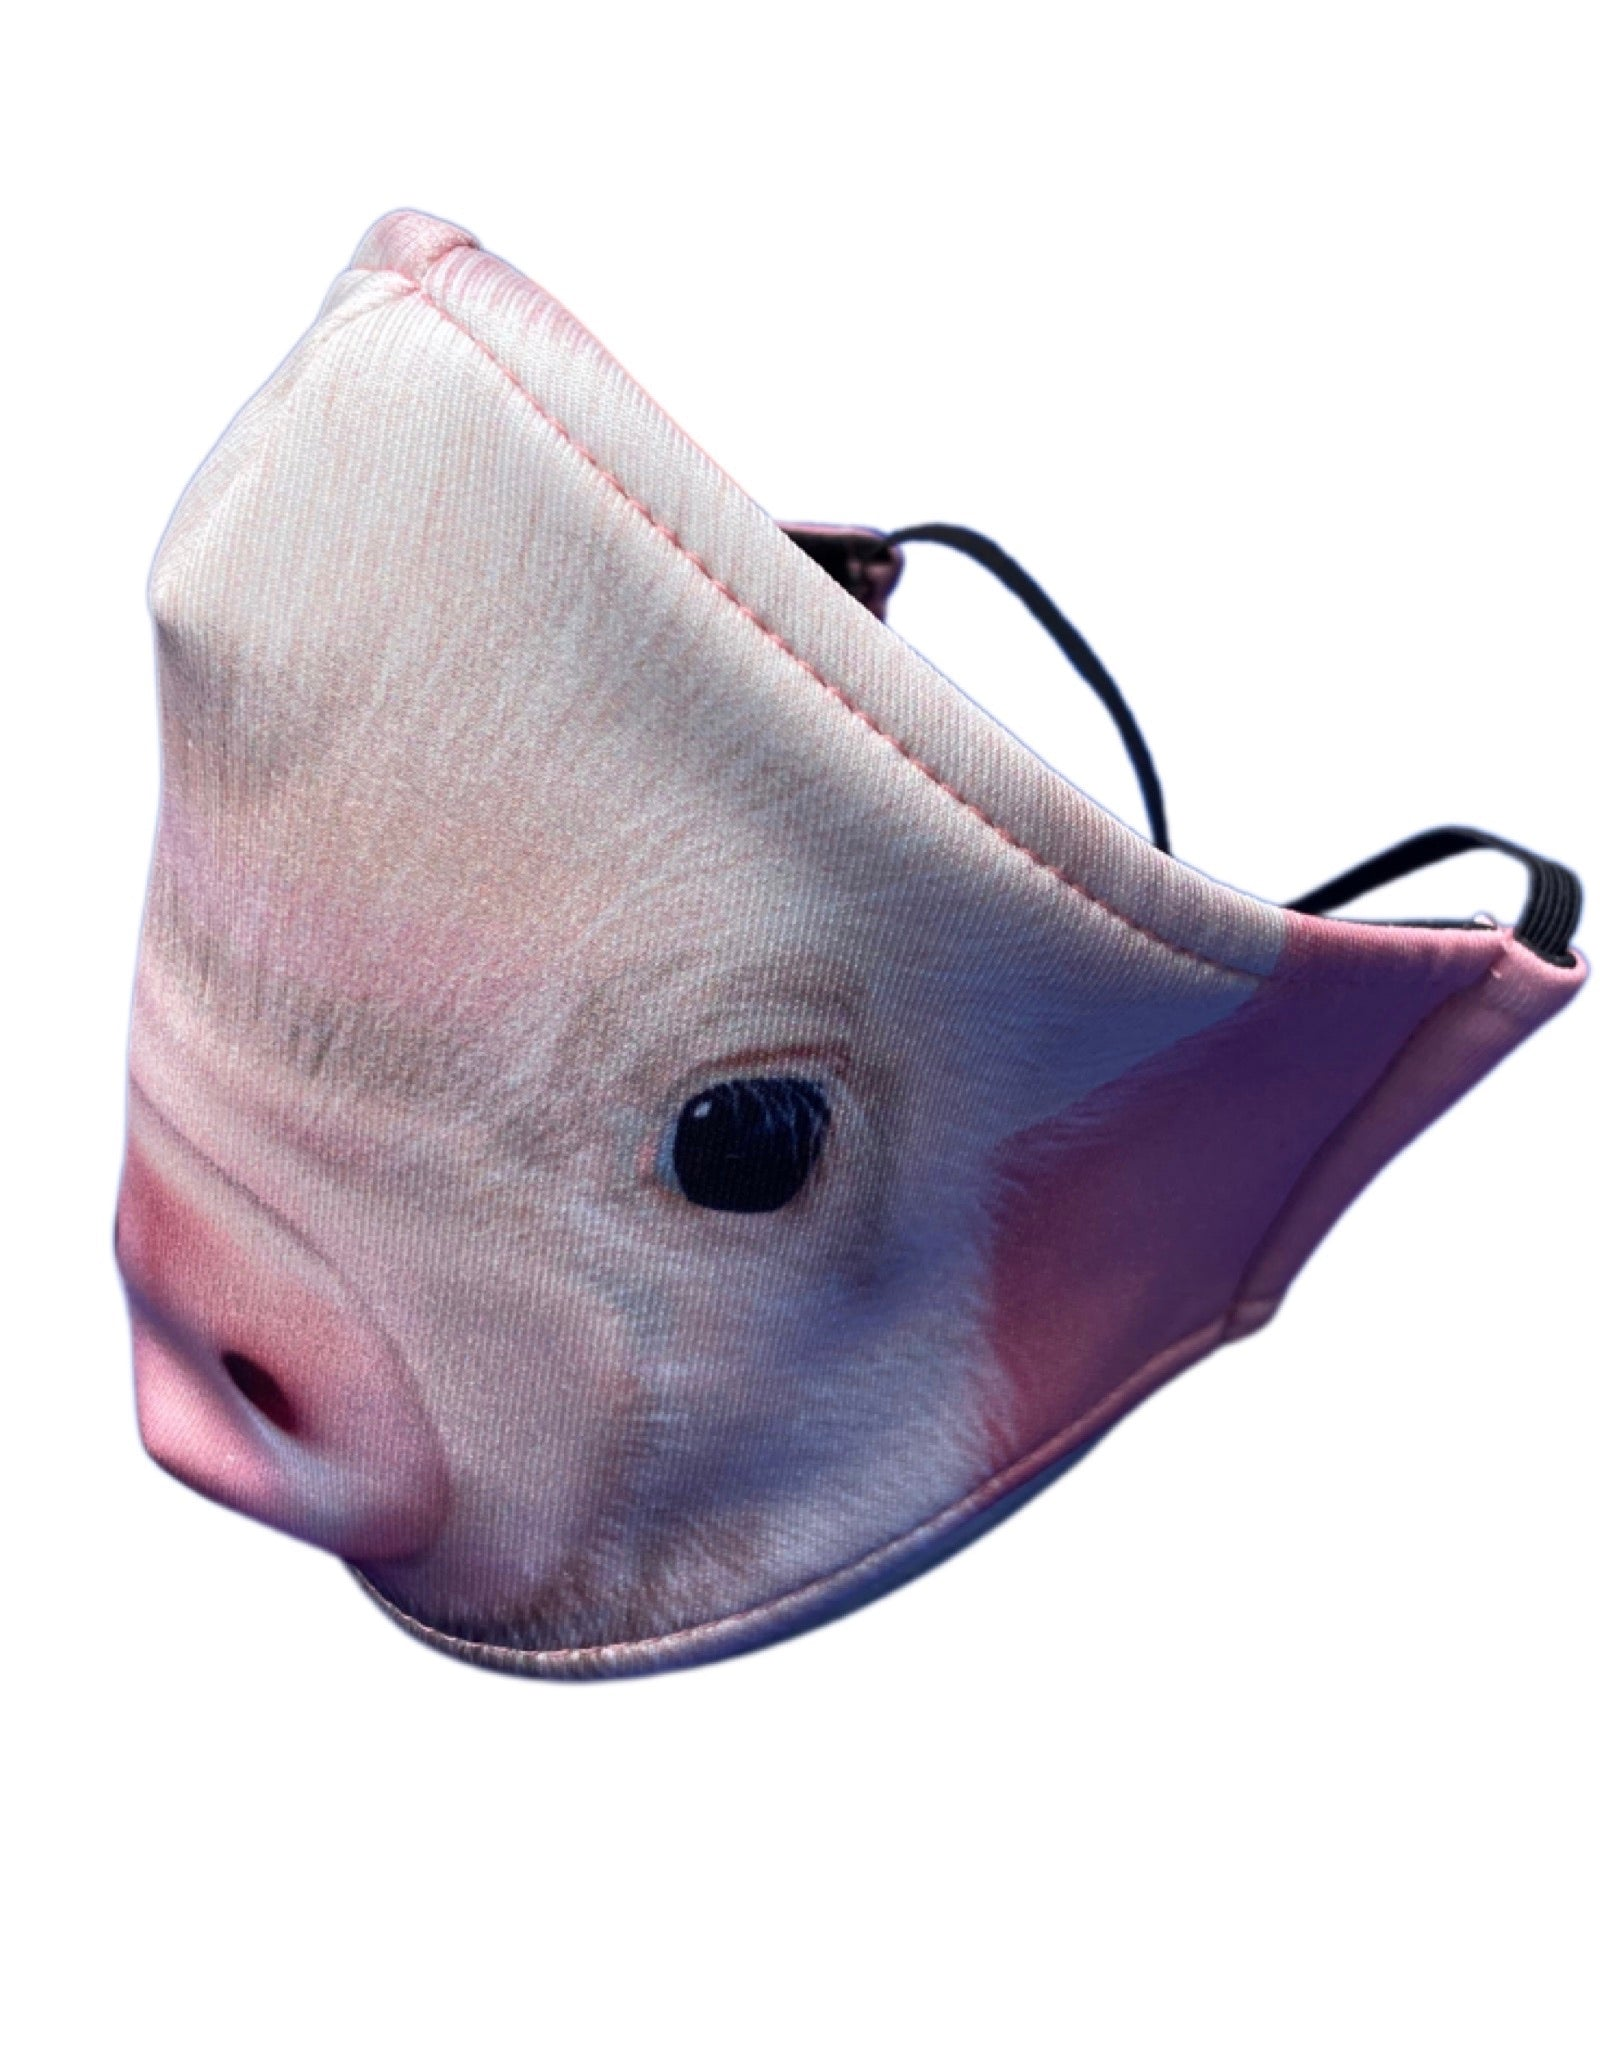 Adult and Kids Animal Cloth Face Mask - Pig